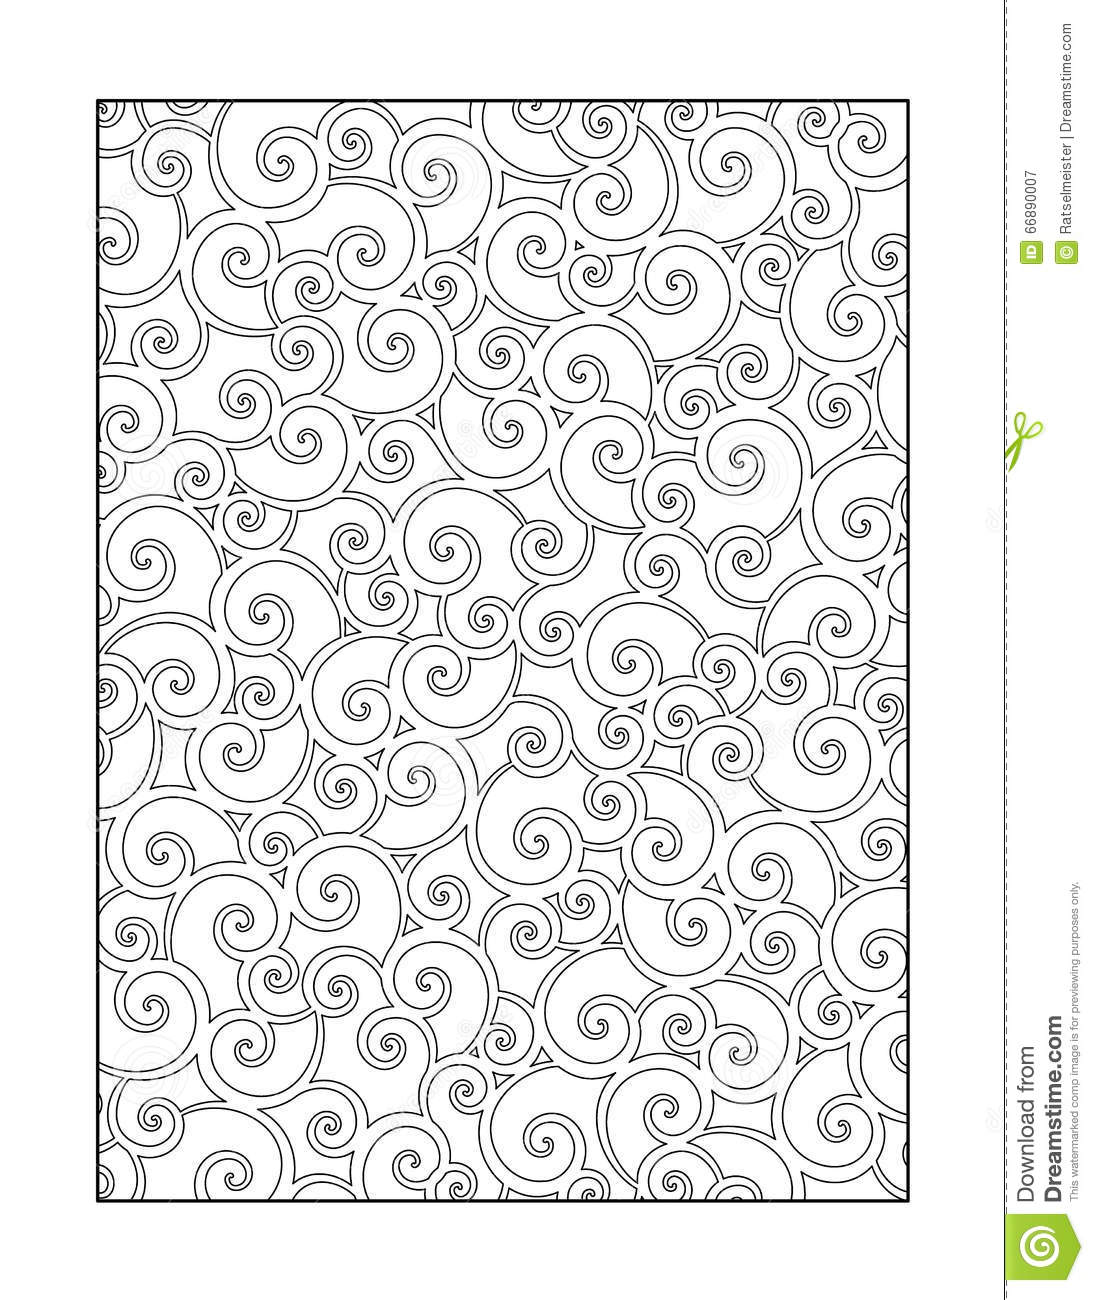 Adult coloring pages black and white ~ Coloring Page For Adults, Or Black And White Ornamental ...